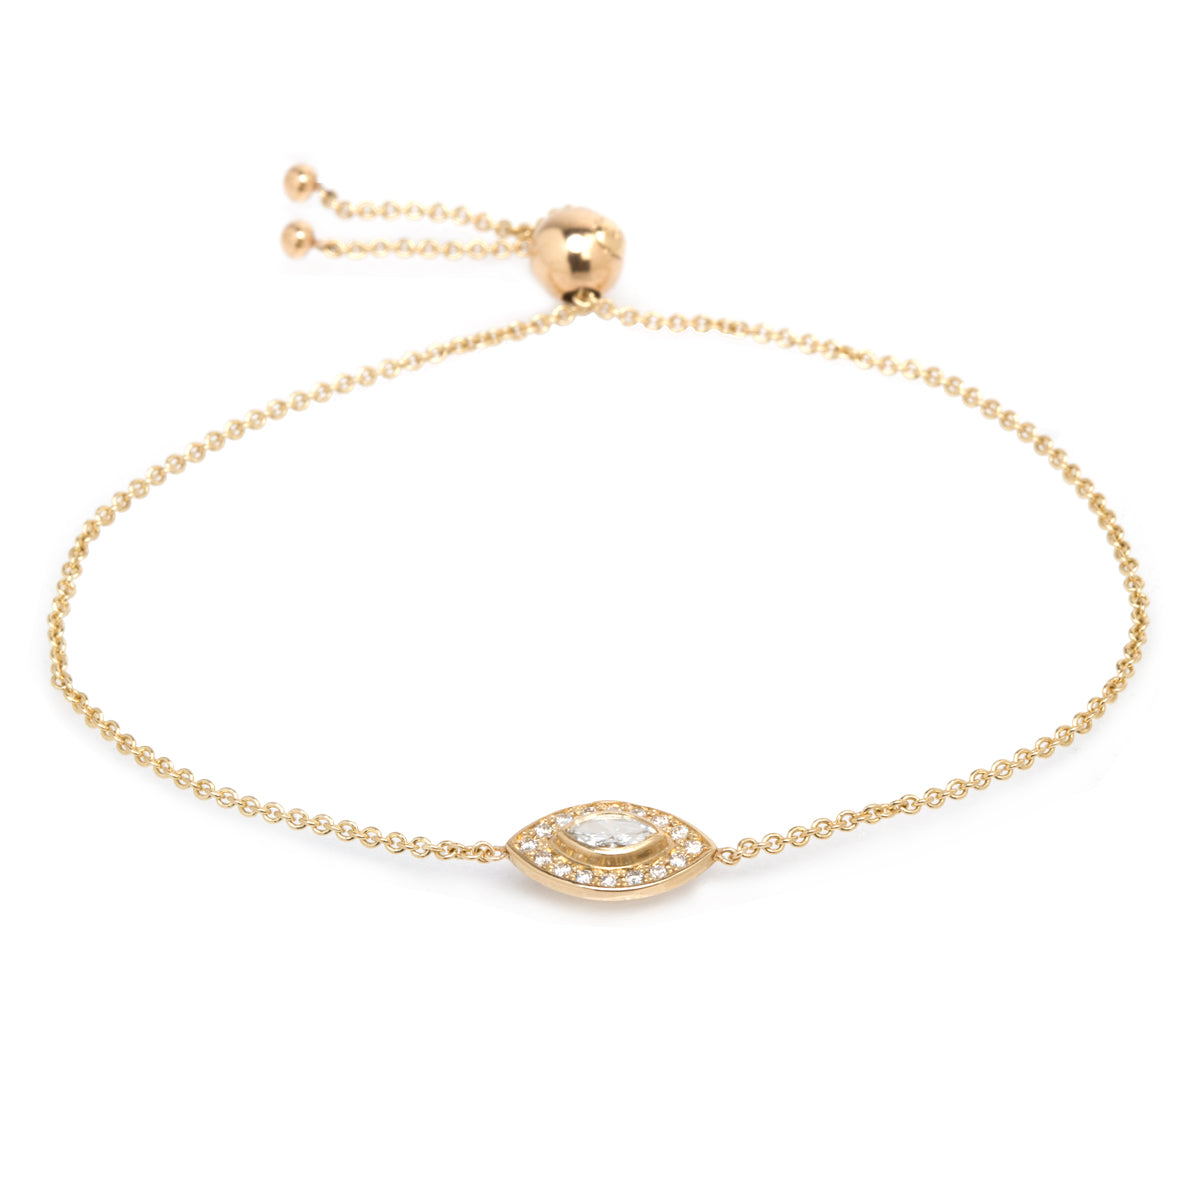 14k halo bolo bracelet with marquis diamond